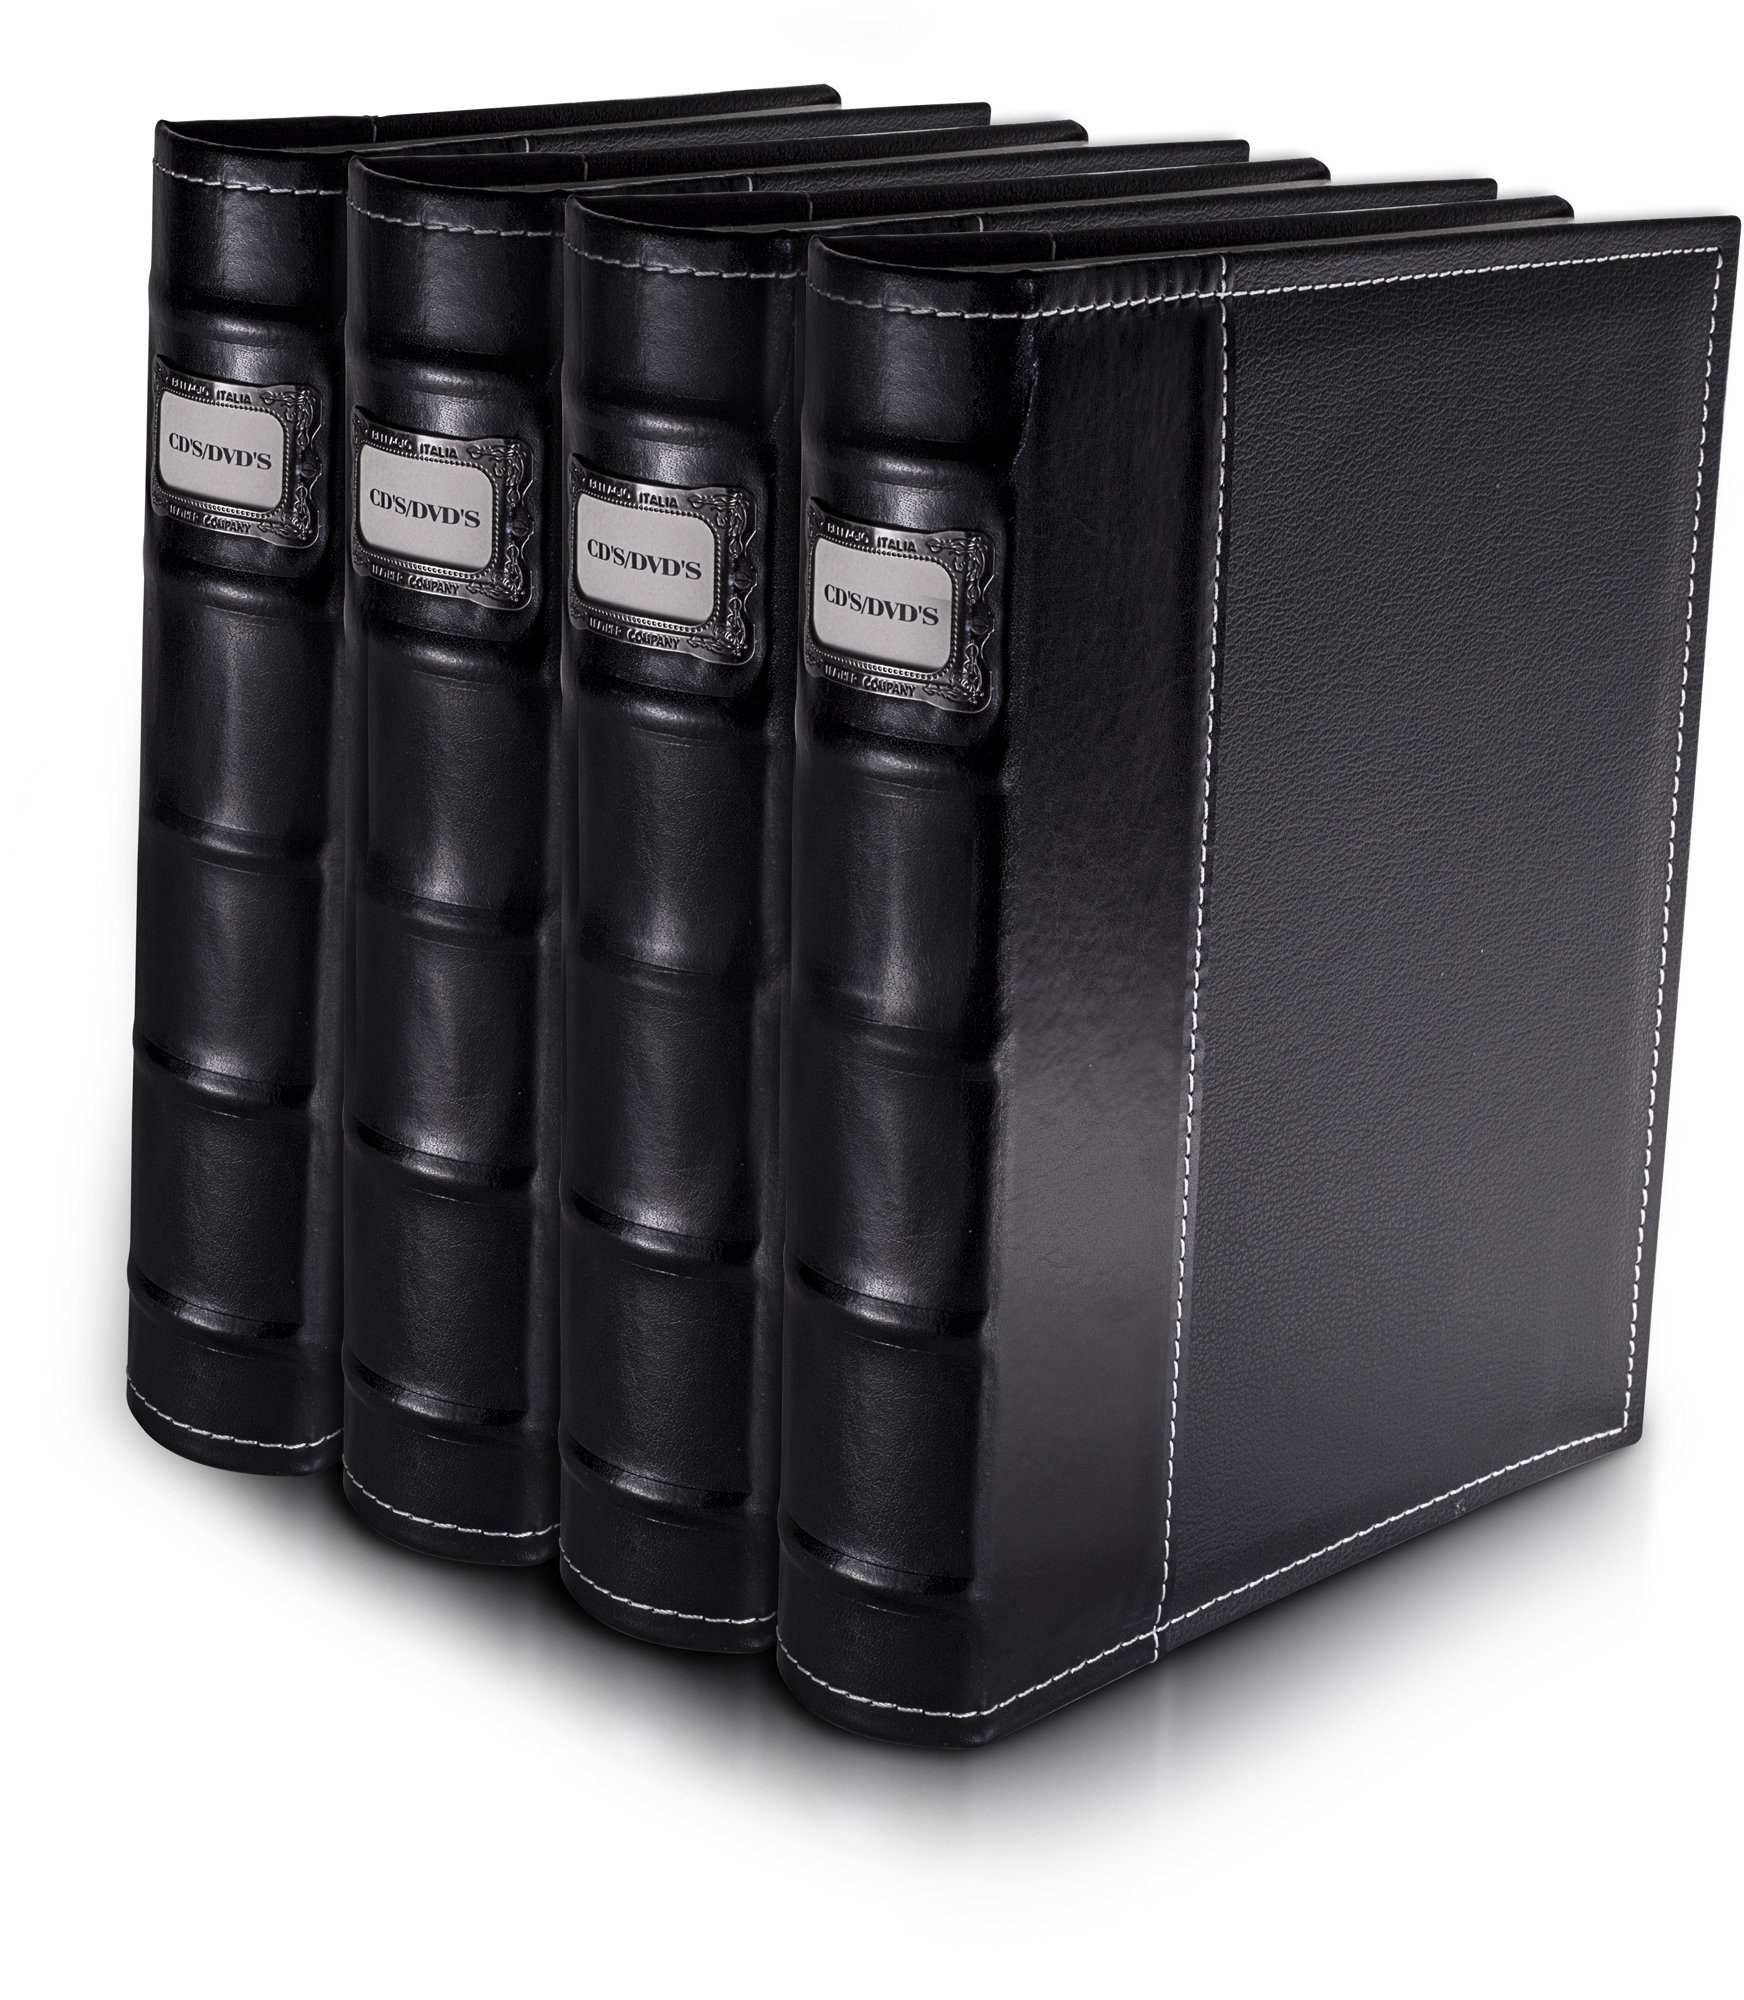 Bellagio-Italia Black DVD Storage Binder Set - Stores Up To 192 DVDs, CDs, or Blu-Rays - Stores DVD Cover Art - Acid-Free Sheets